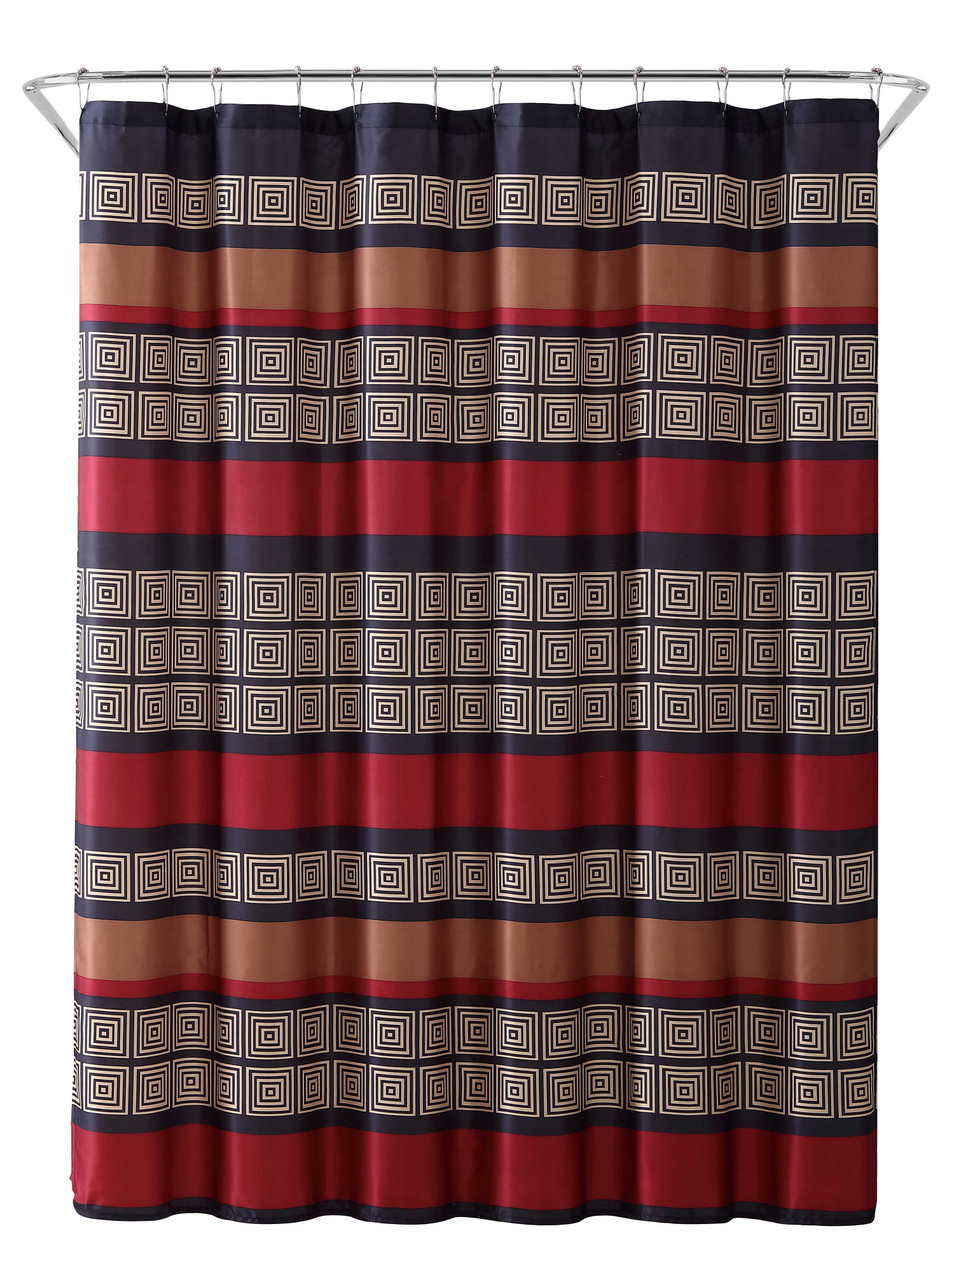 Burgundy Black Copper And Beige Fabric Shower Curtain Wide Stripe Design 70 X 72 My Infinity Store